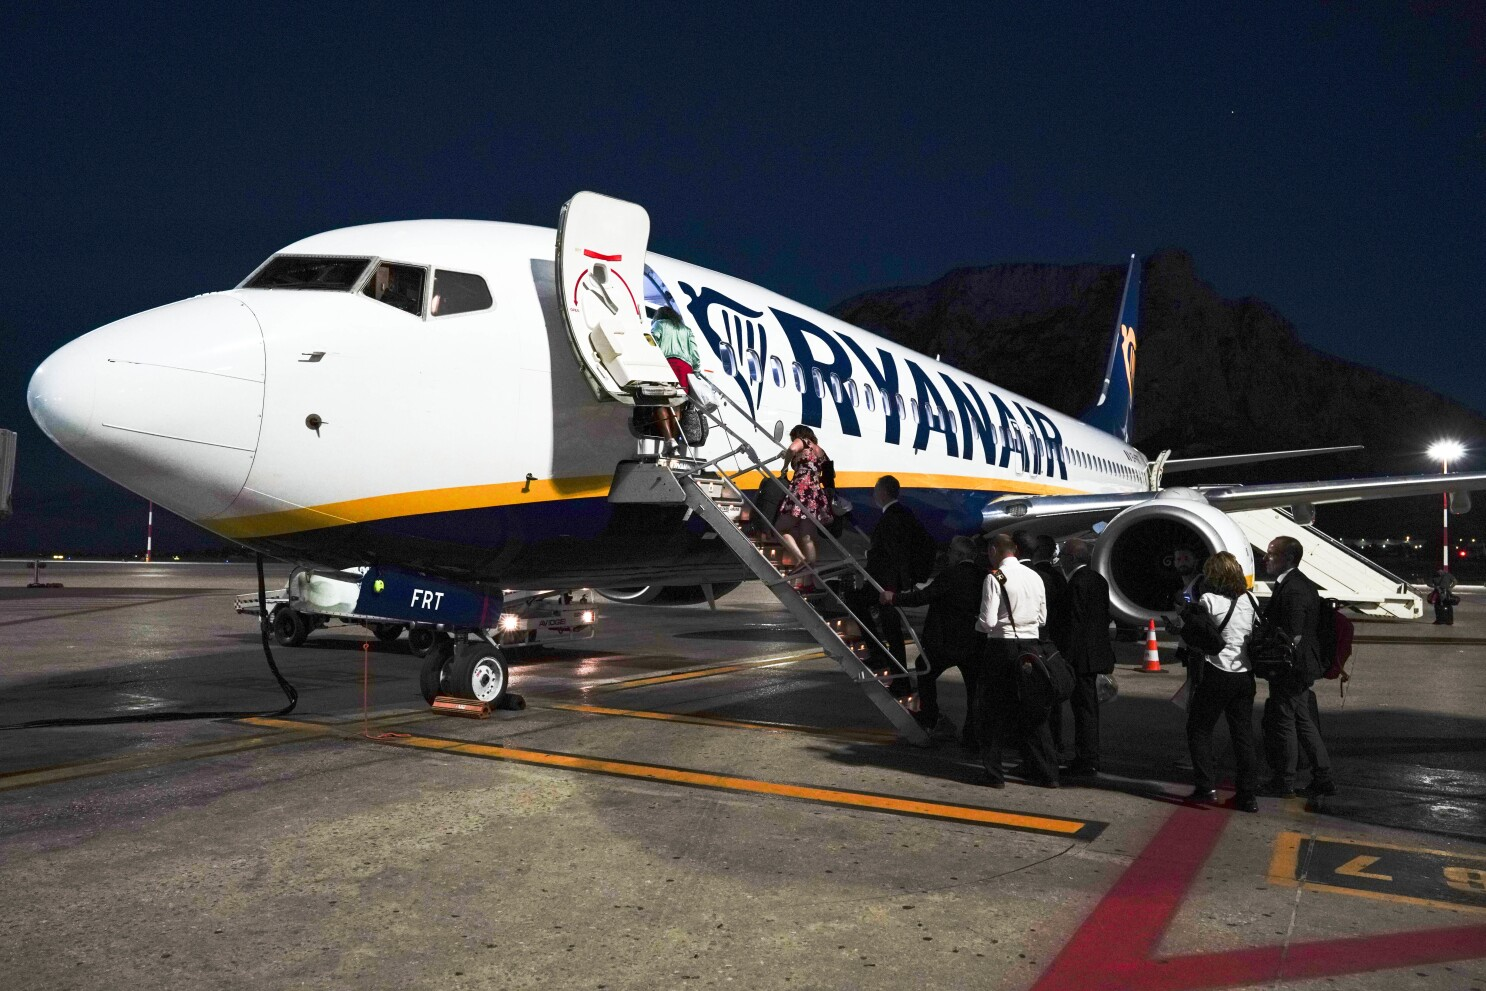 Budget Carrier Ryanair Cuts Flights As Contagions Increase The San Diego Union Tribune